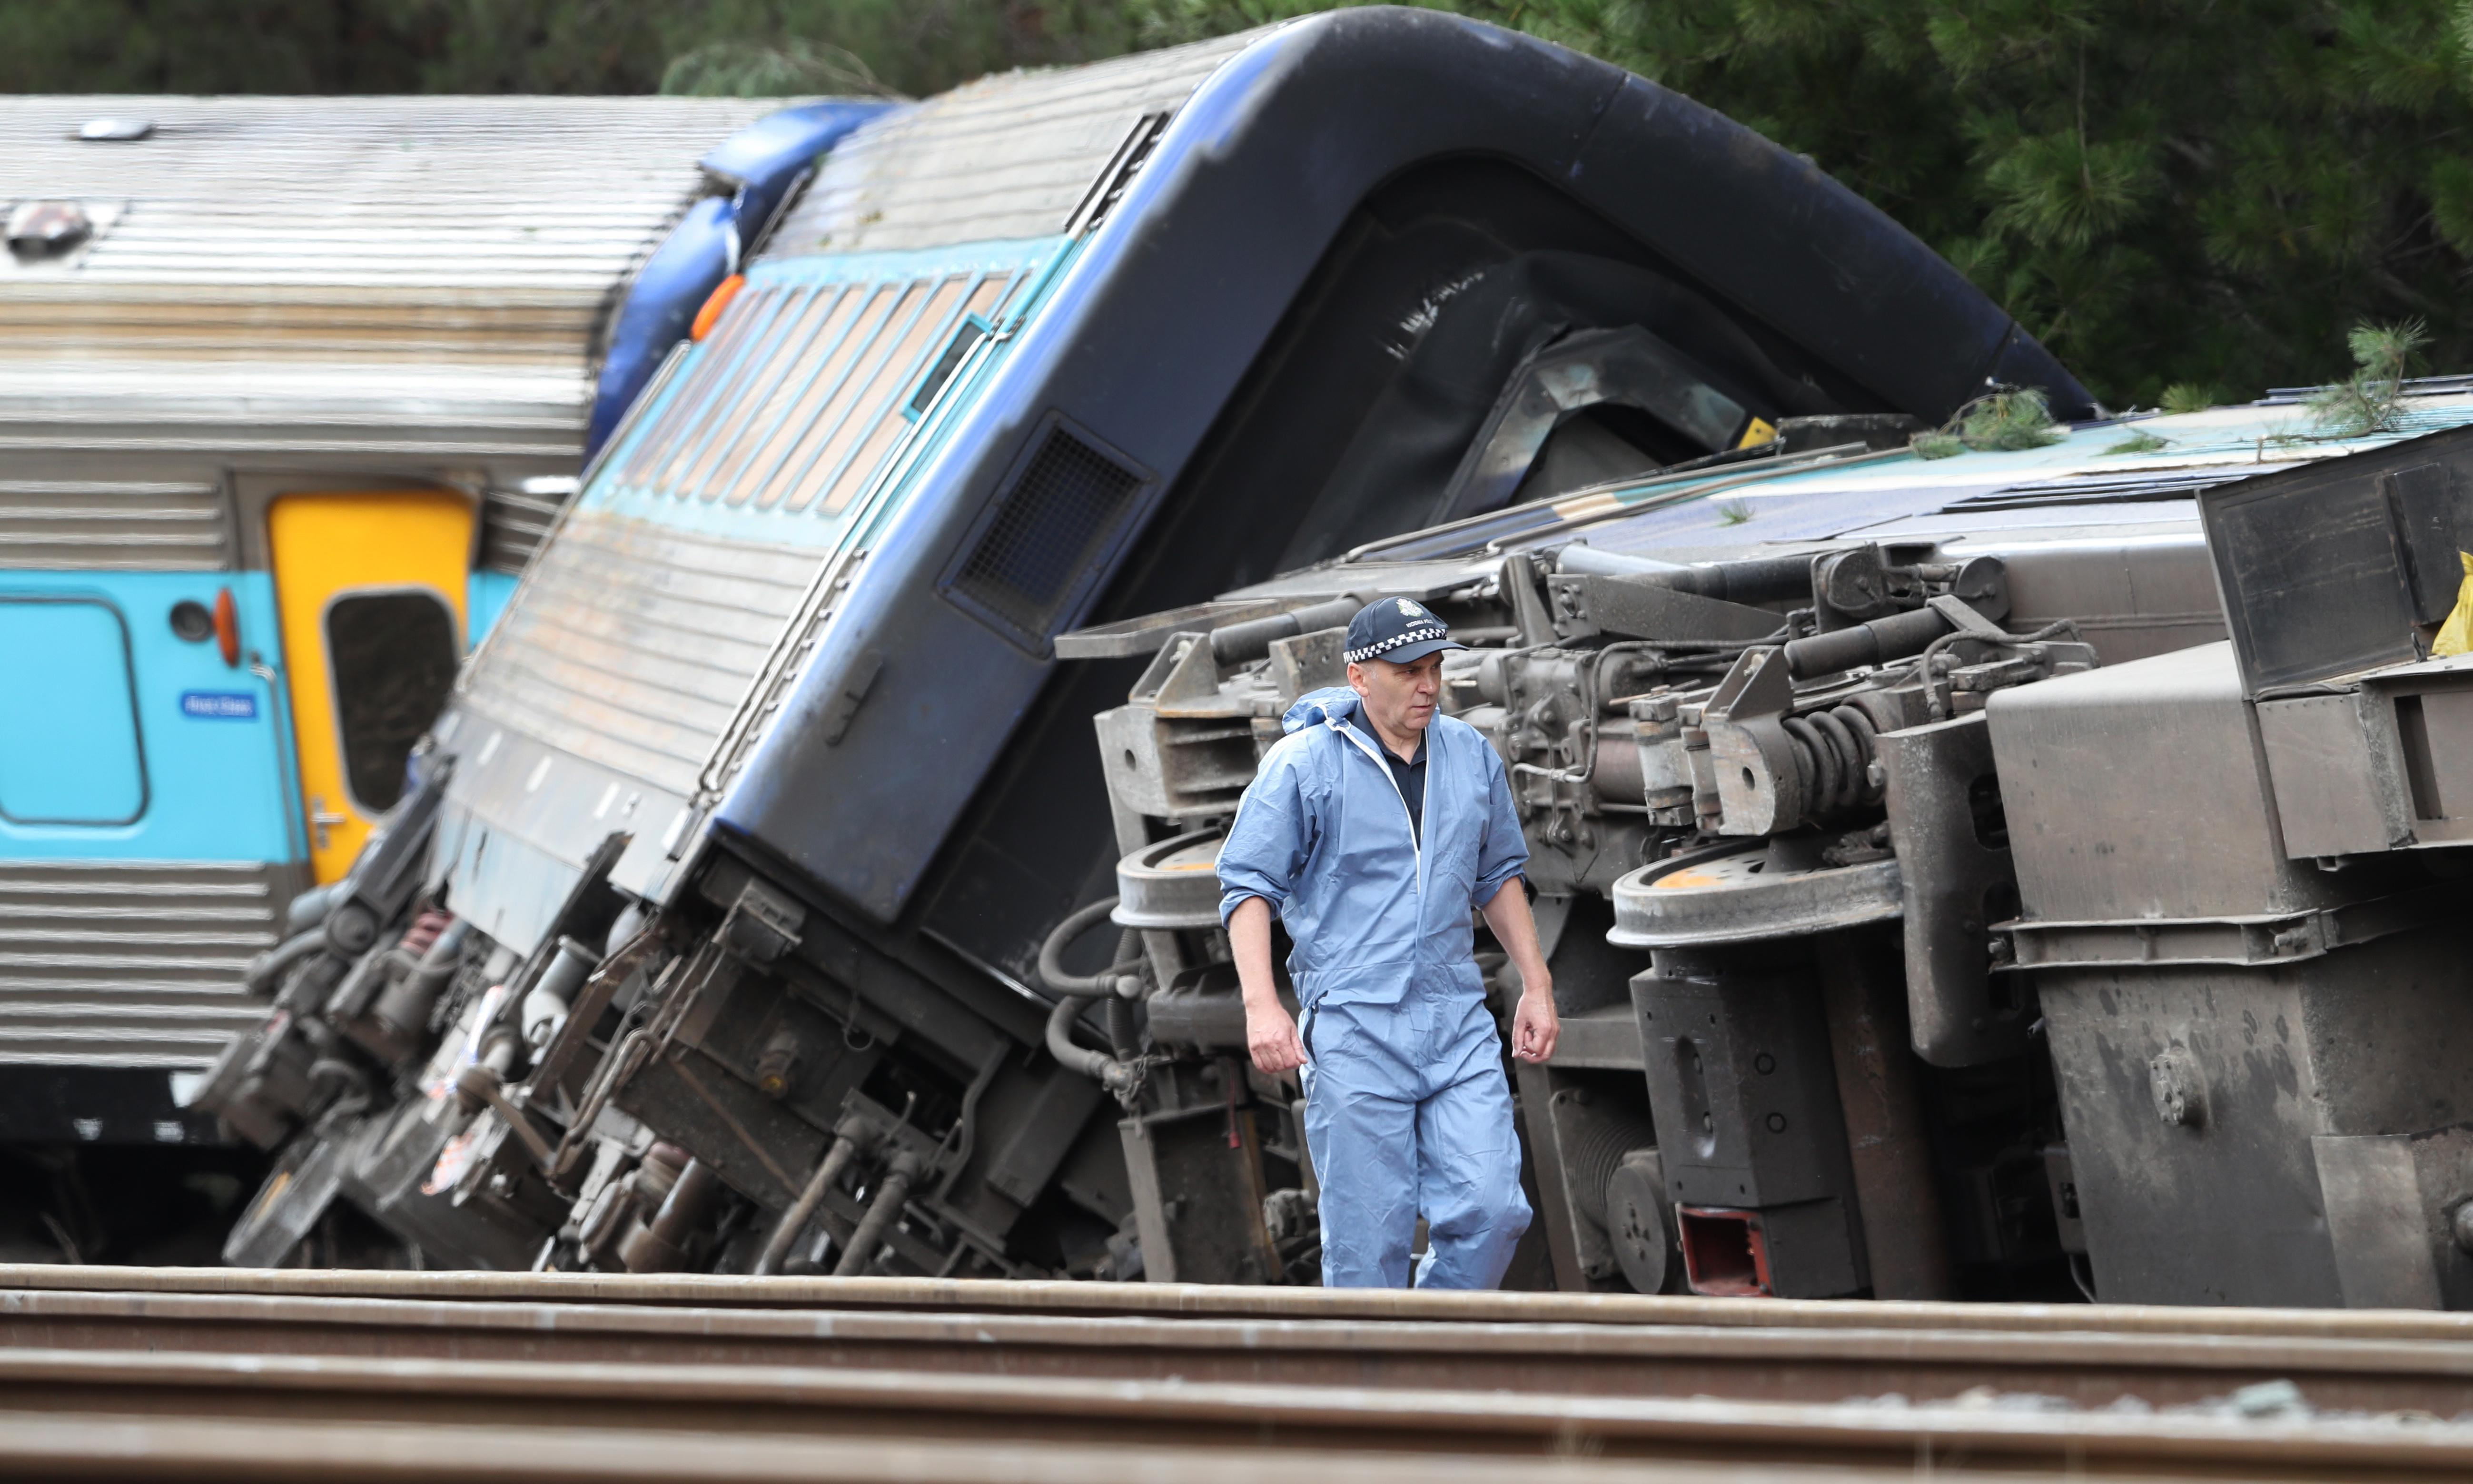 Victoria train crash: investigators to look into speed as possible factor in XPT derailment